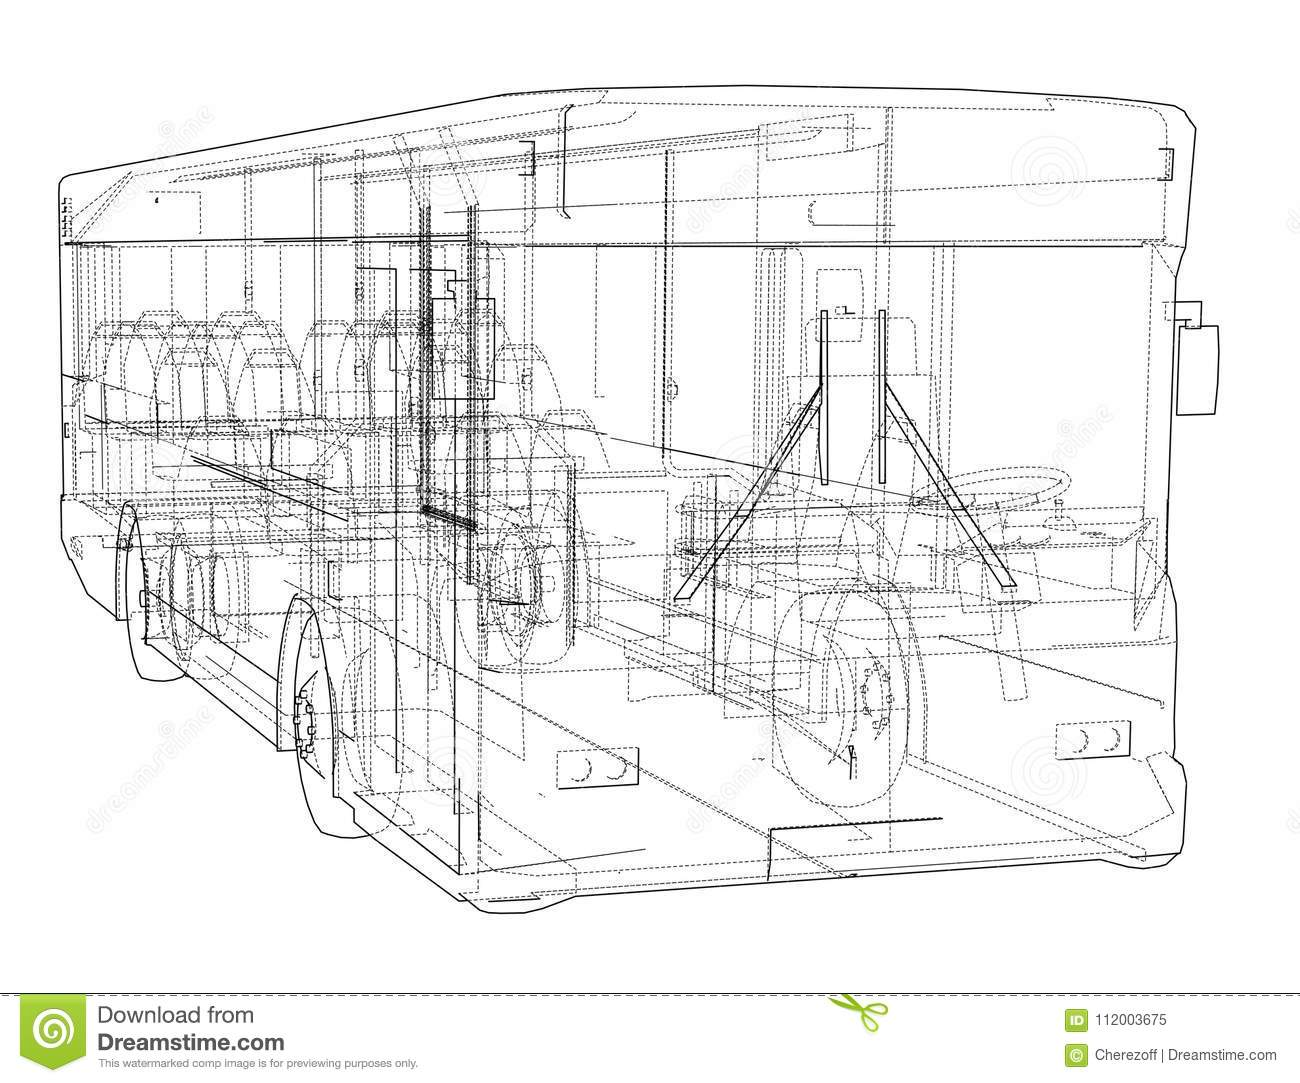 bus body diagrams